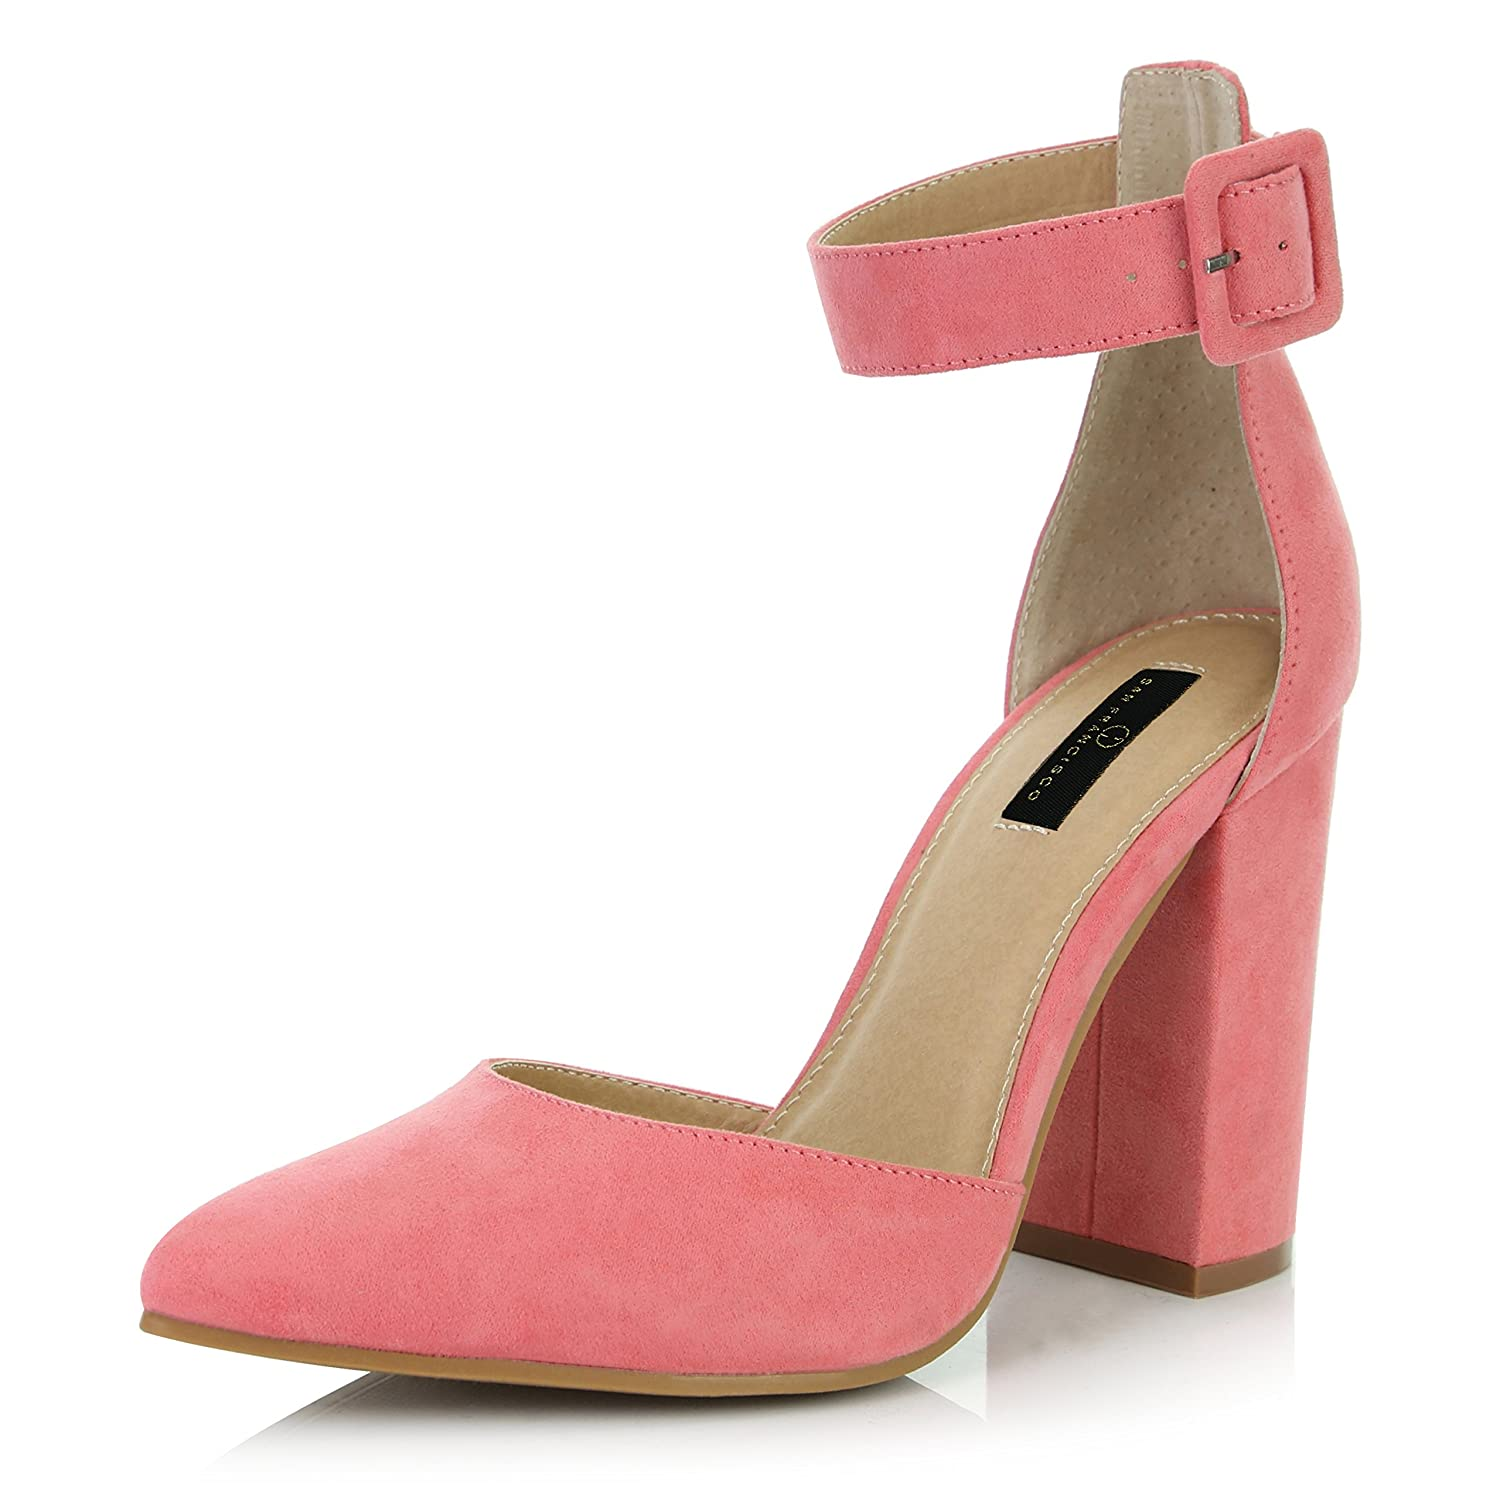 186965bd1f4 DailyShoes Women s Fashion Pointed Toe Chunky Ankle Strap Buckle ...